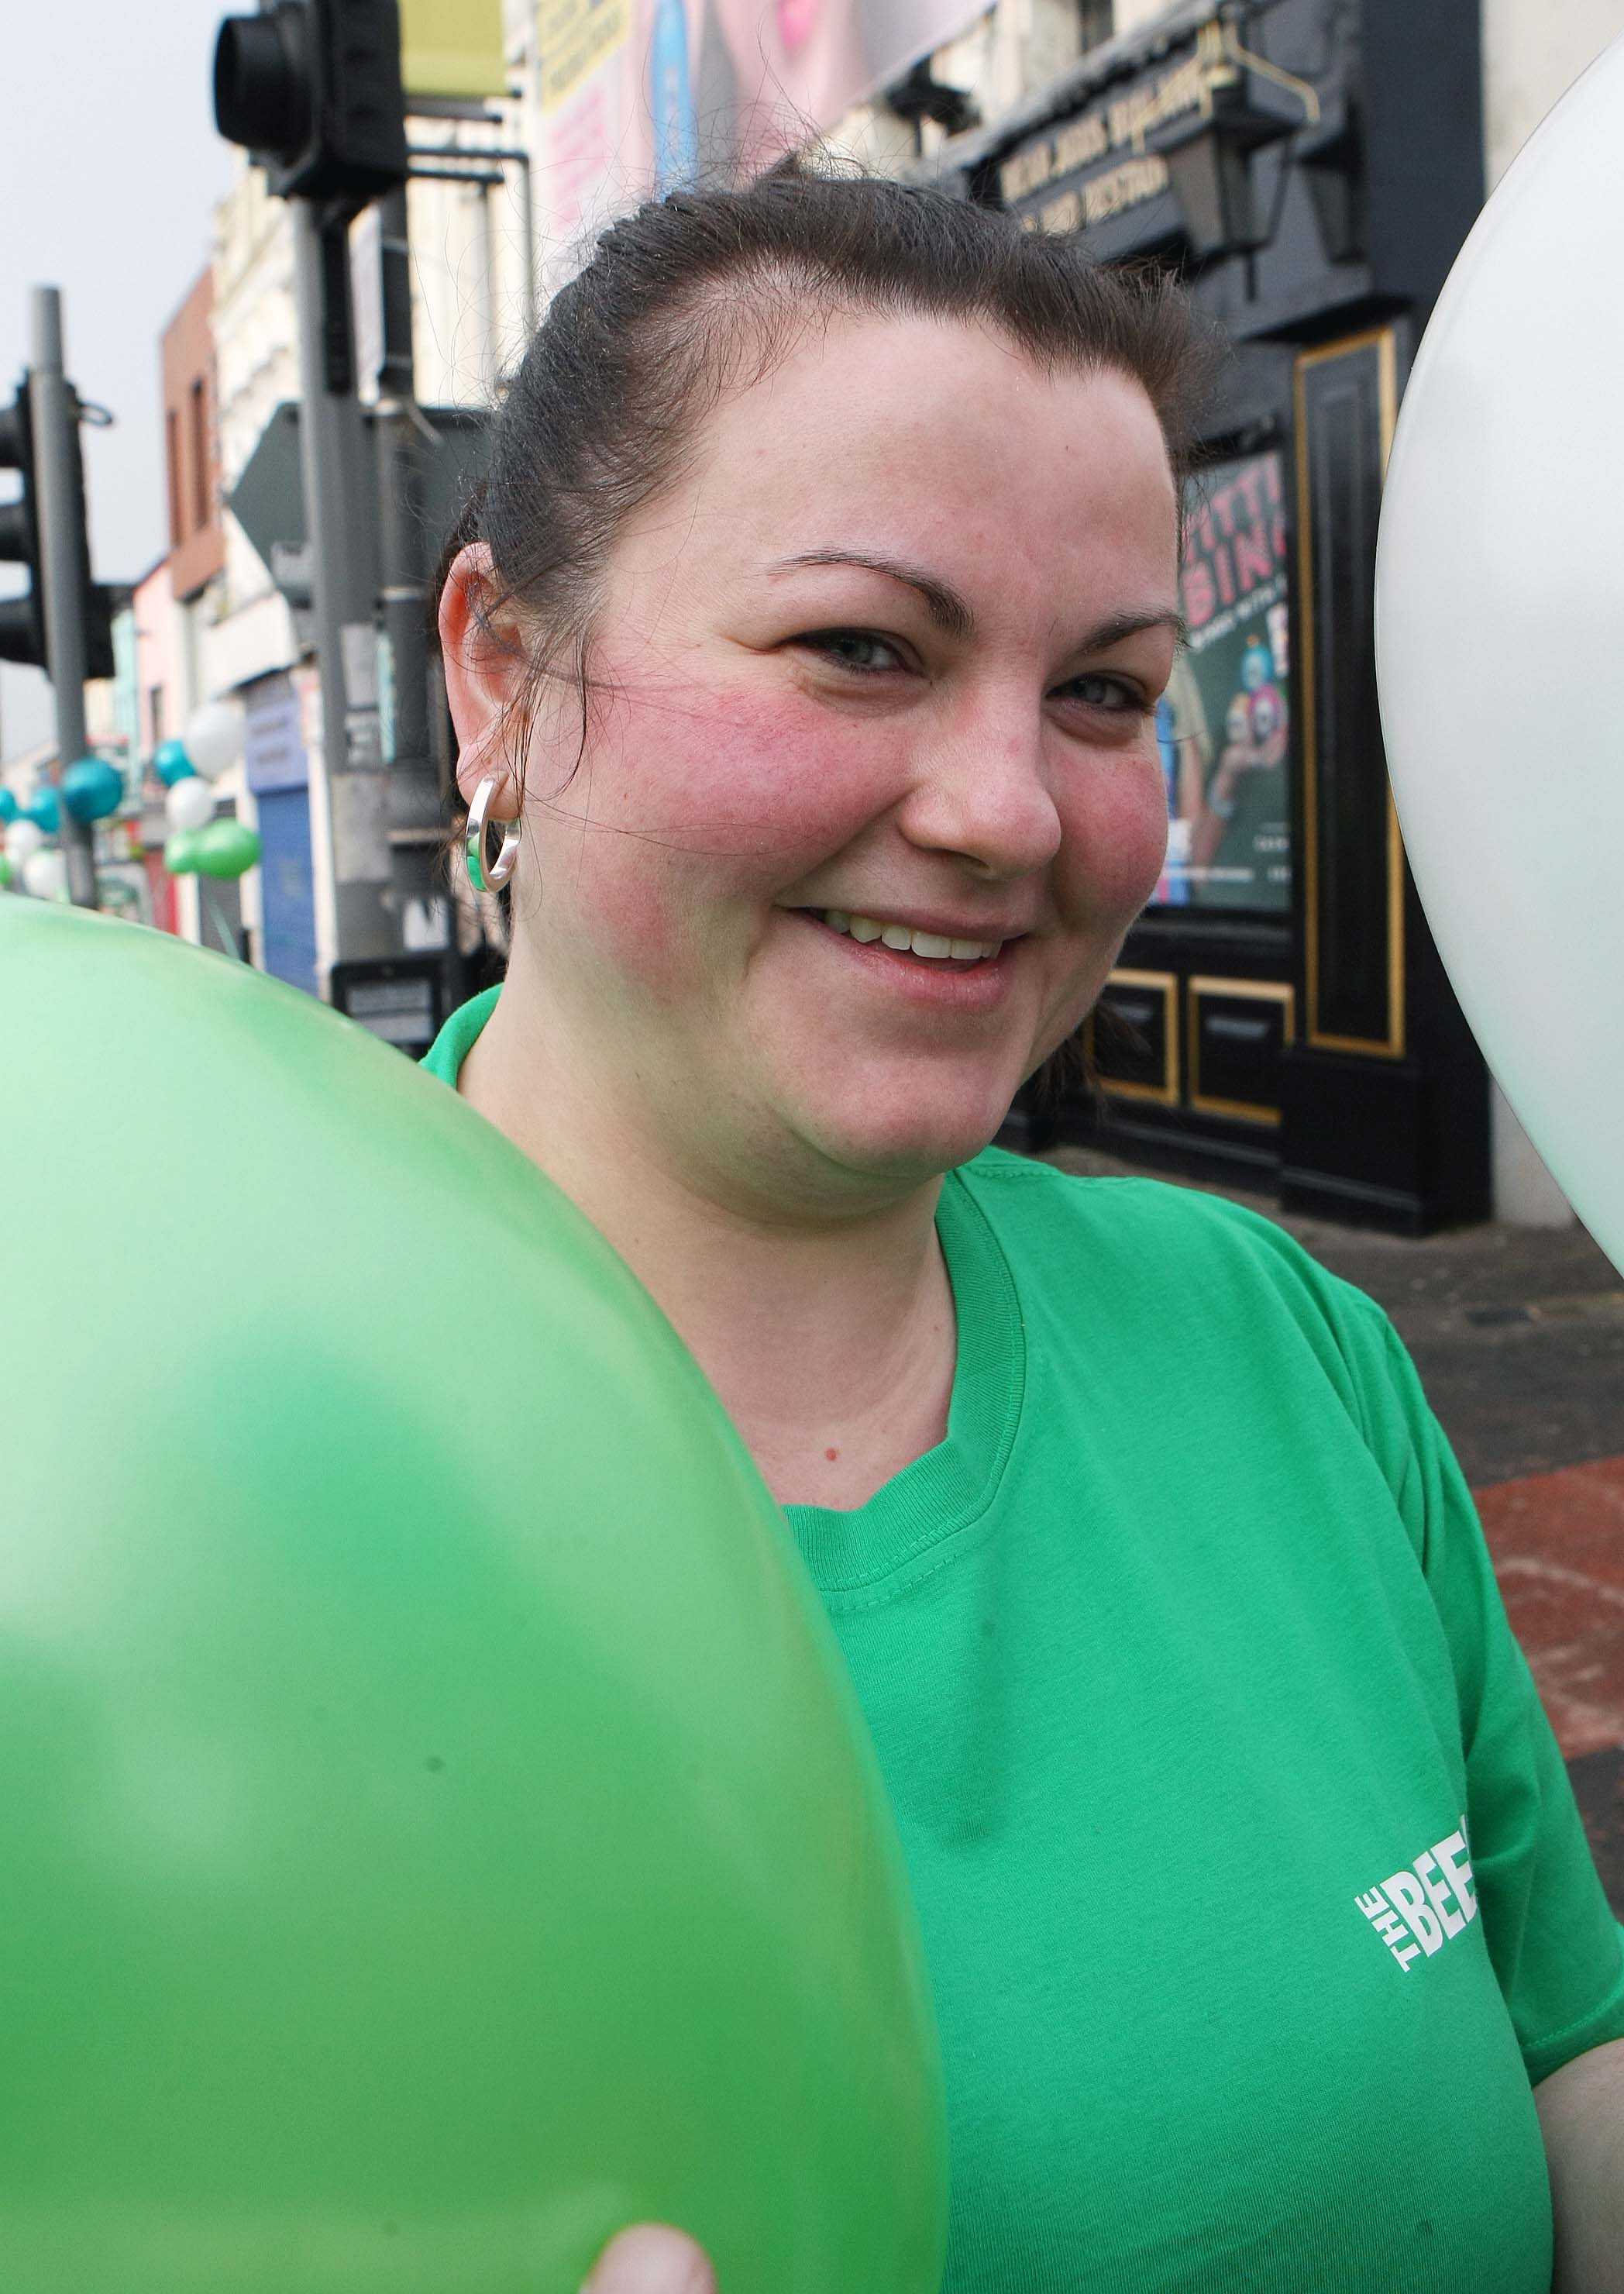 Tuesday 17-3-2015St Patrick's DaySPAR Craic 10k BelfastHelena McDonnell of the Beehive ready to cheer on the runnersSparCraic10K170315FP004